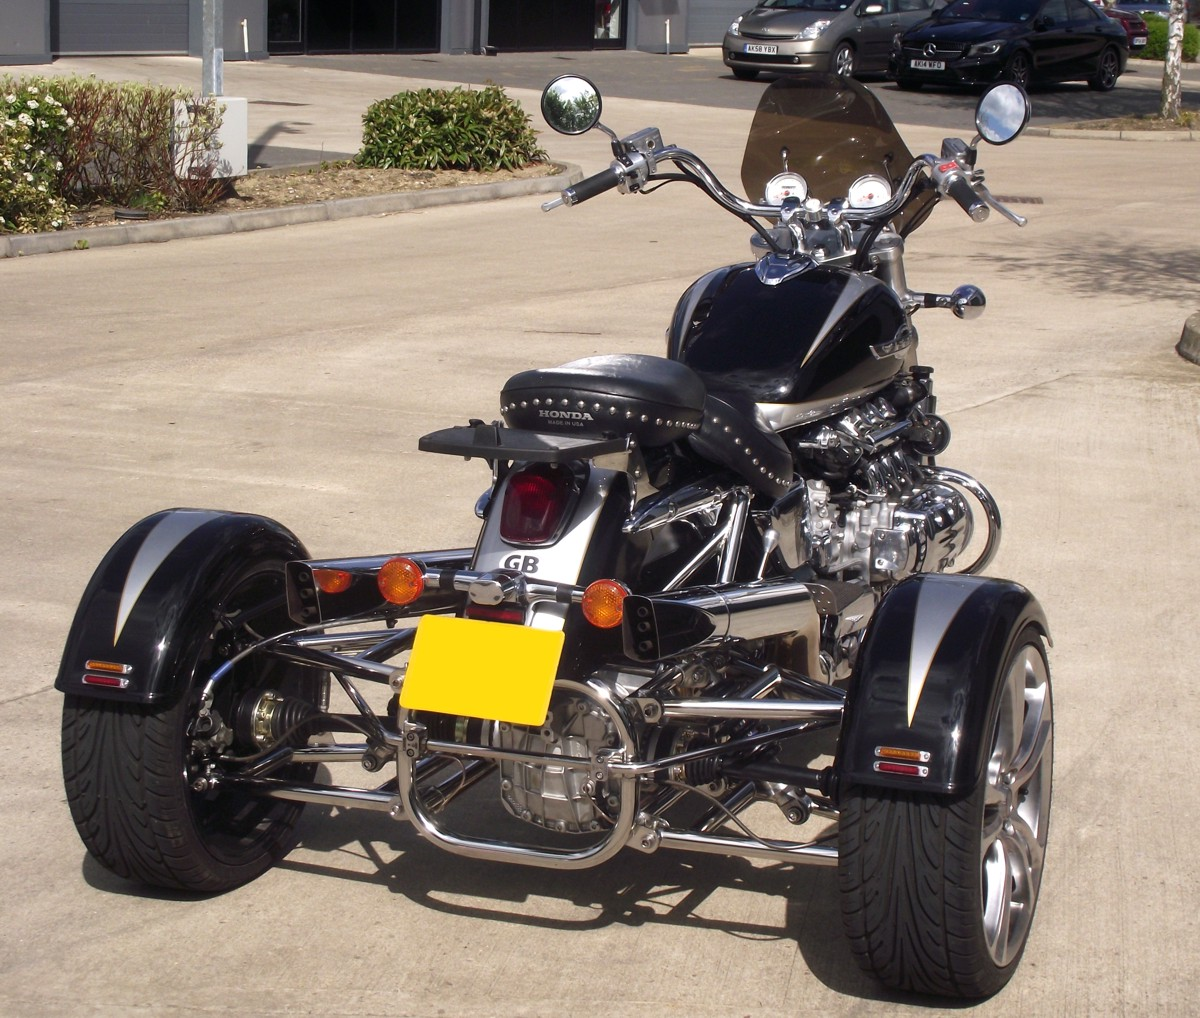 Casarva Honda Valkyrie F6C IRS trike with mirror polished stainless steel tube conversion and reverse gearbox